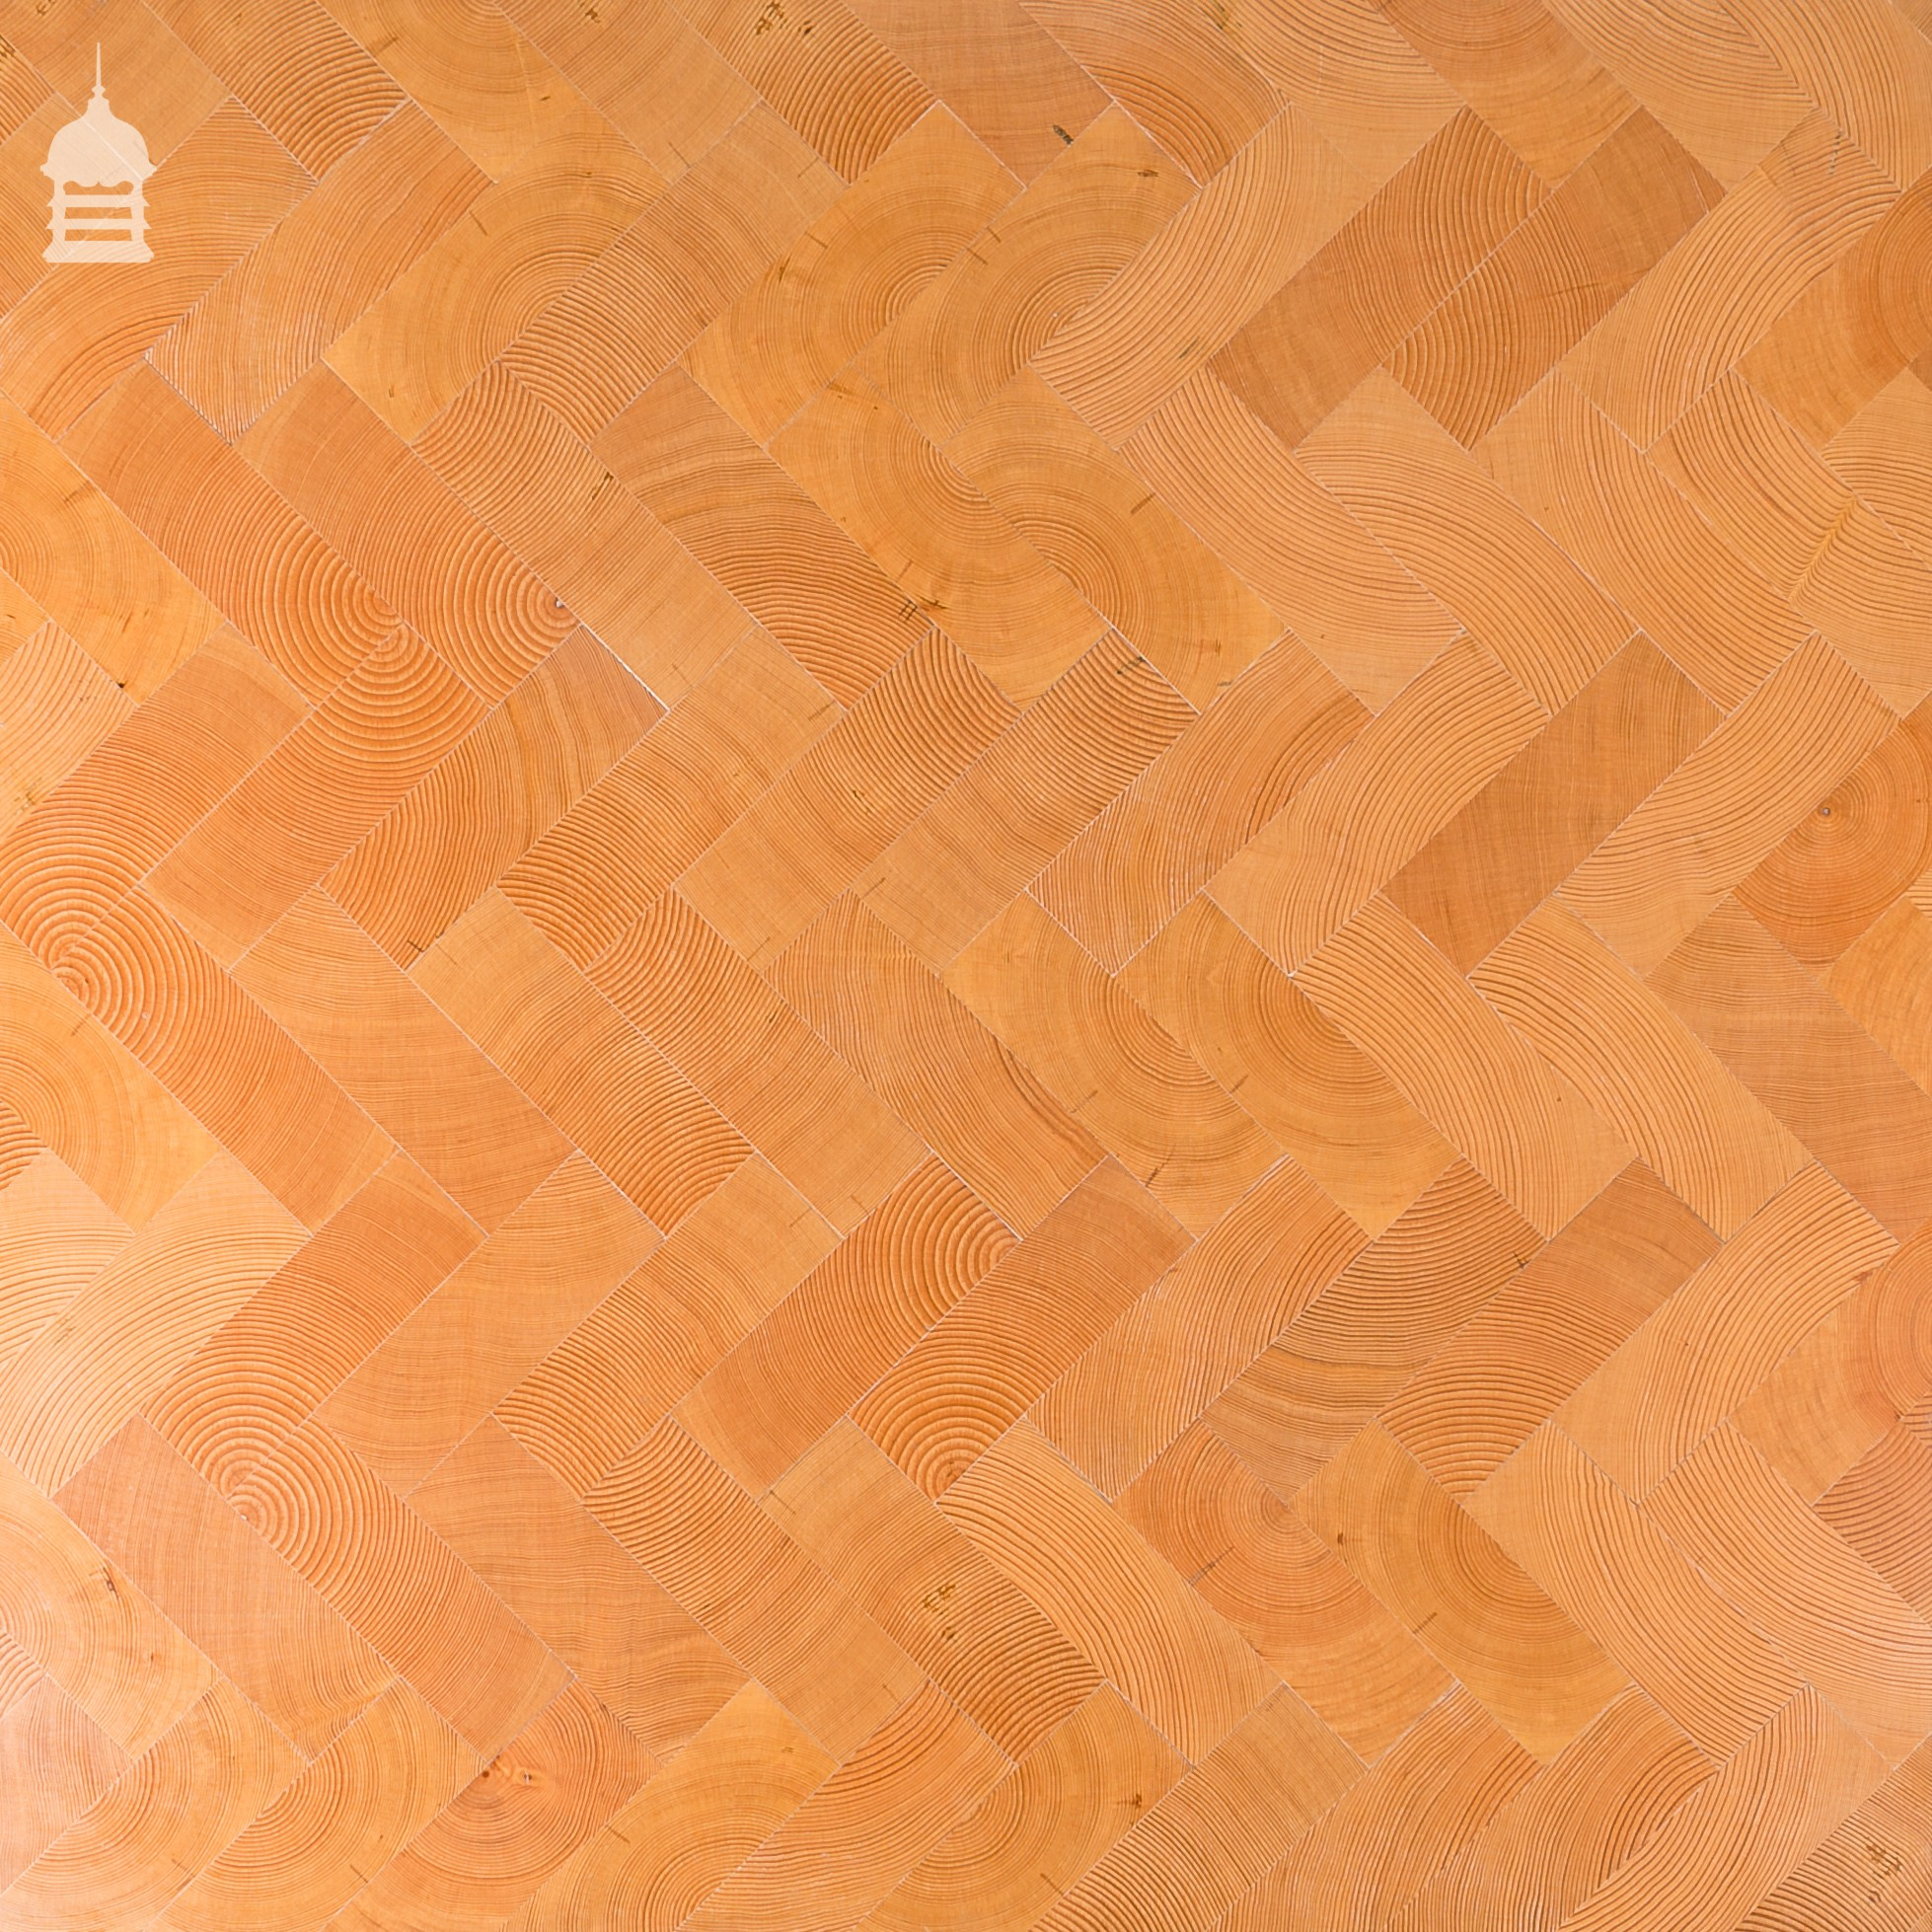 End Grain Columbian Pine Block Parquet Flooring Parquet